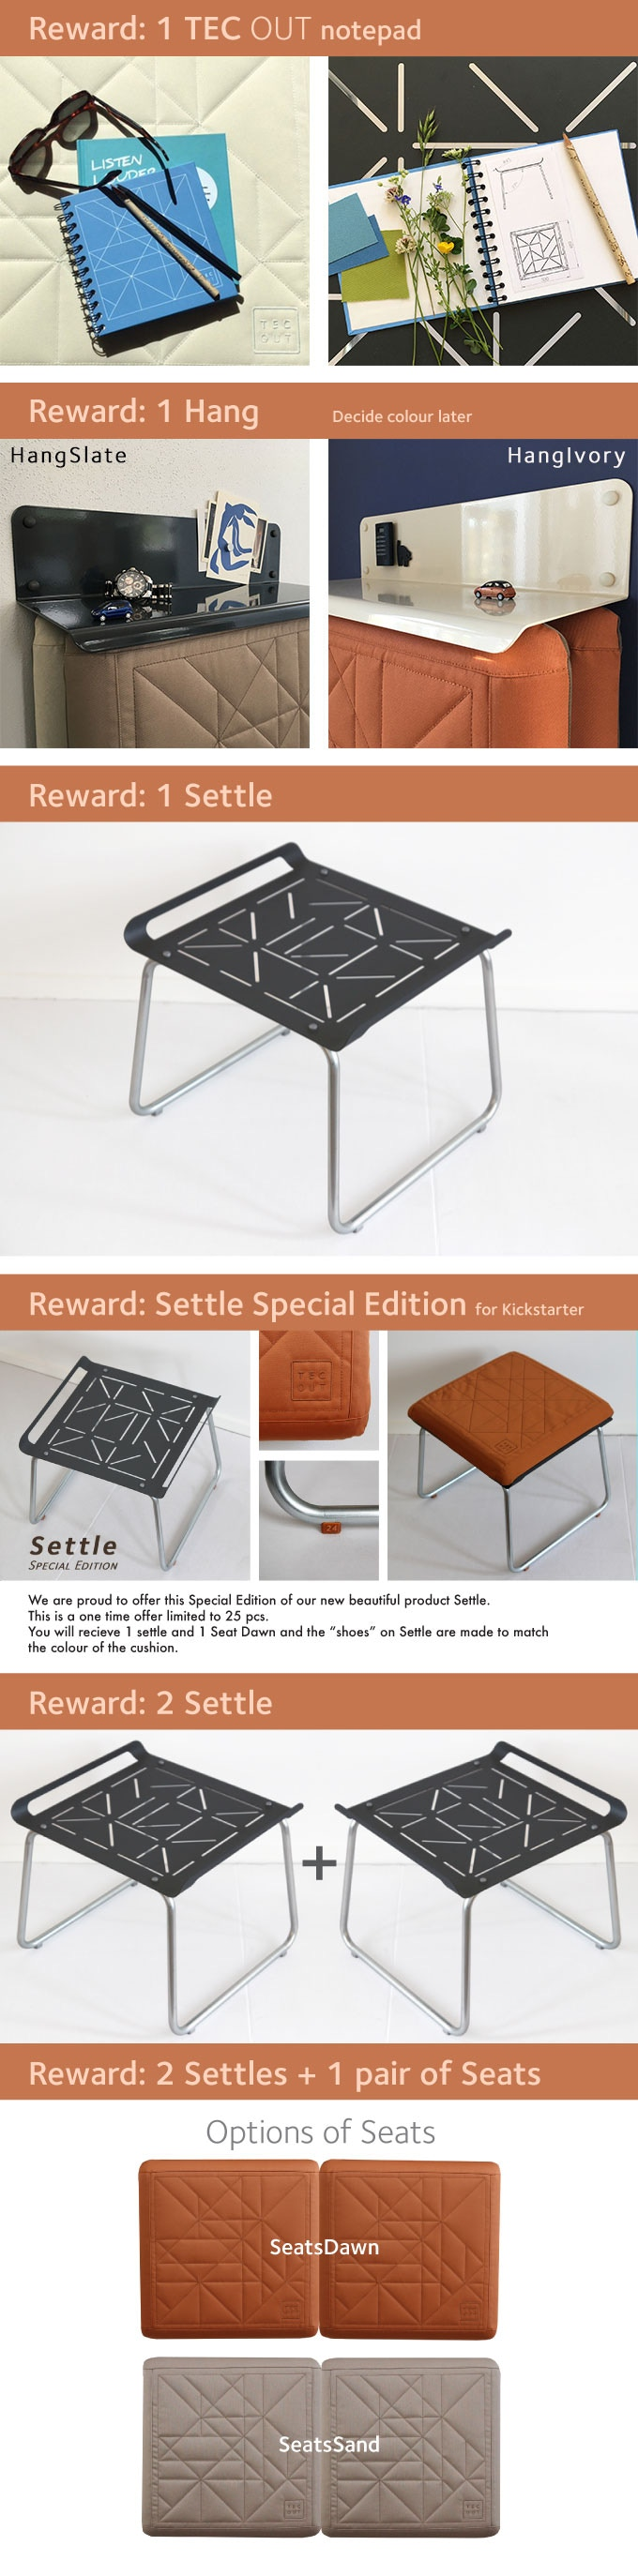 Settle by TEC OUT   a modular furniture crafted in Denmark by TEC ... : altanräcke höjd : Inredning